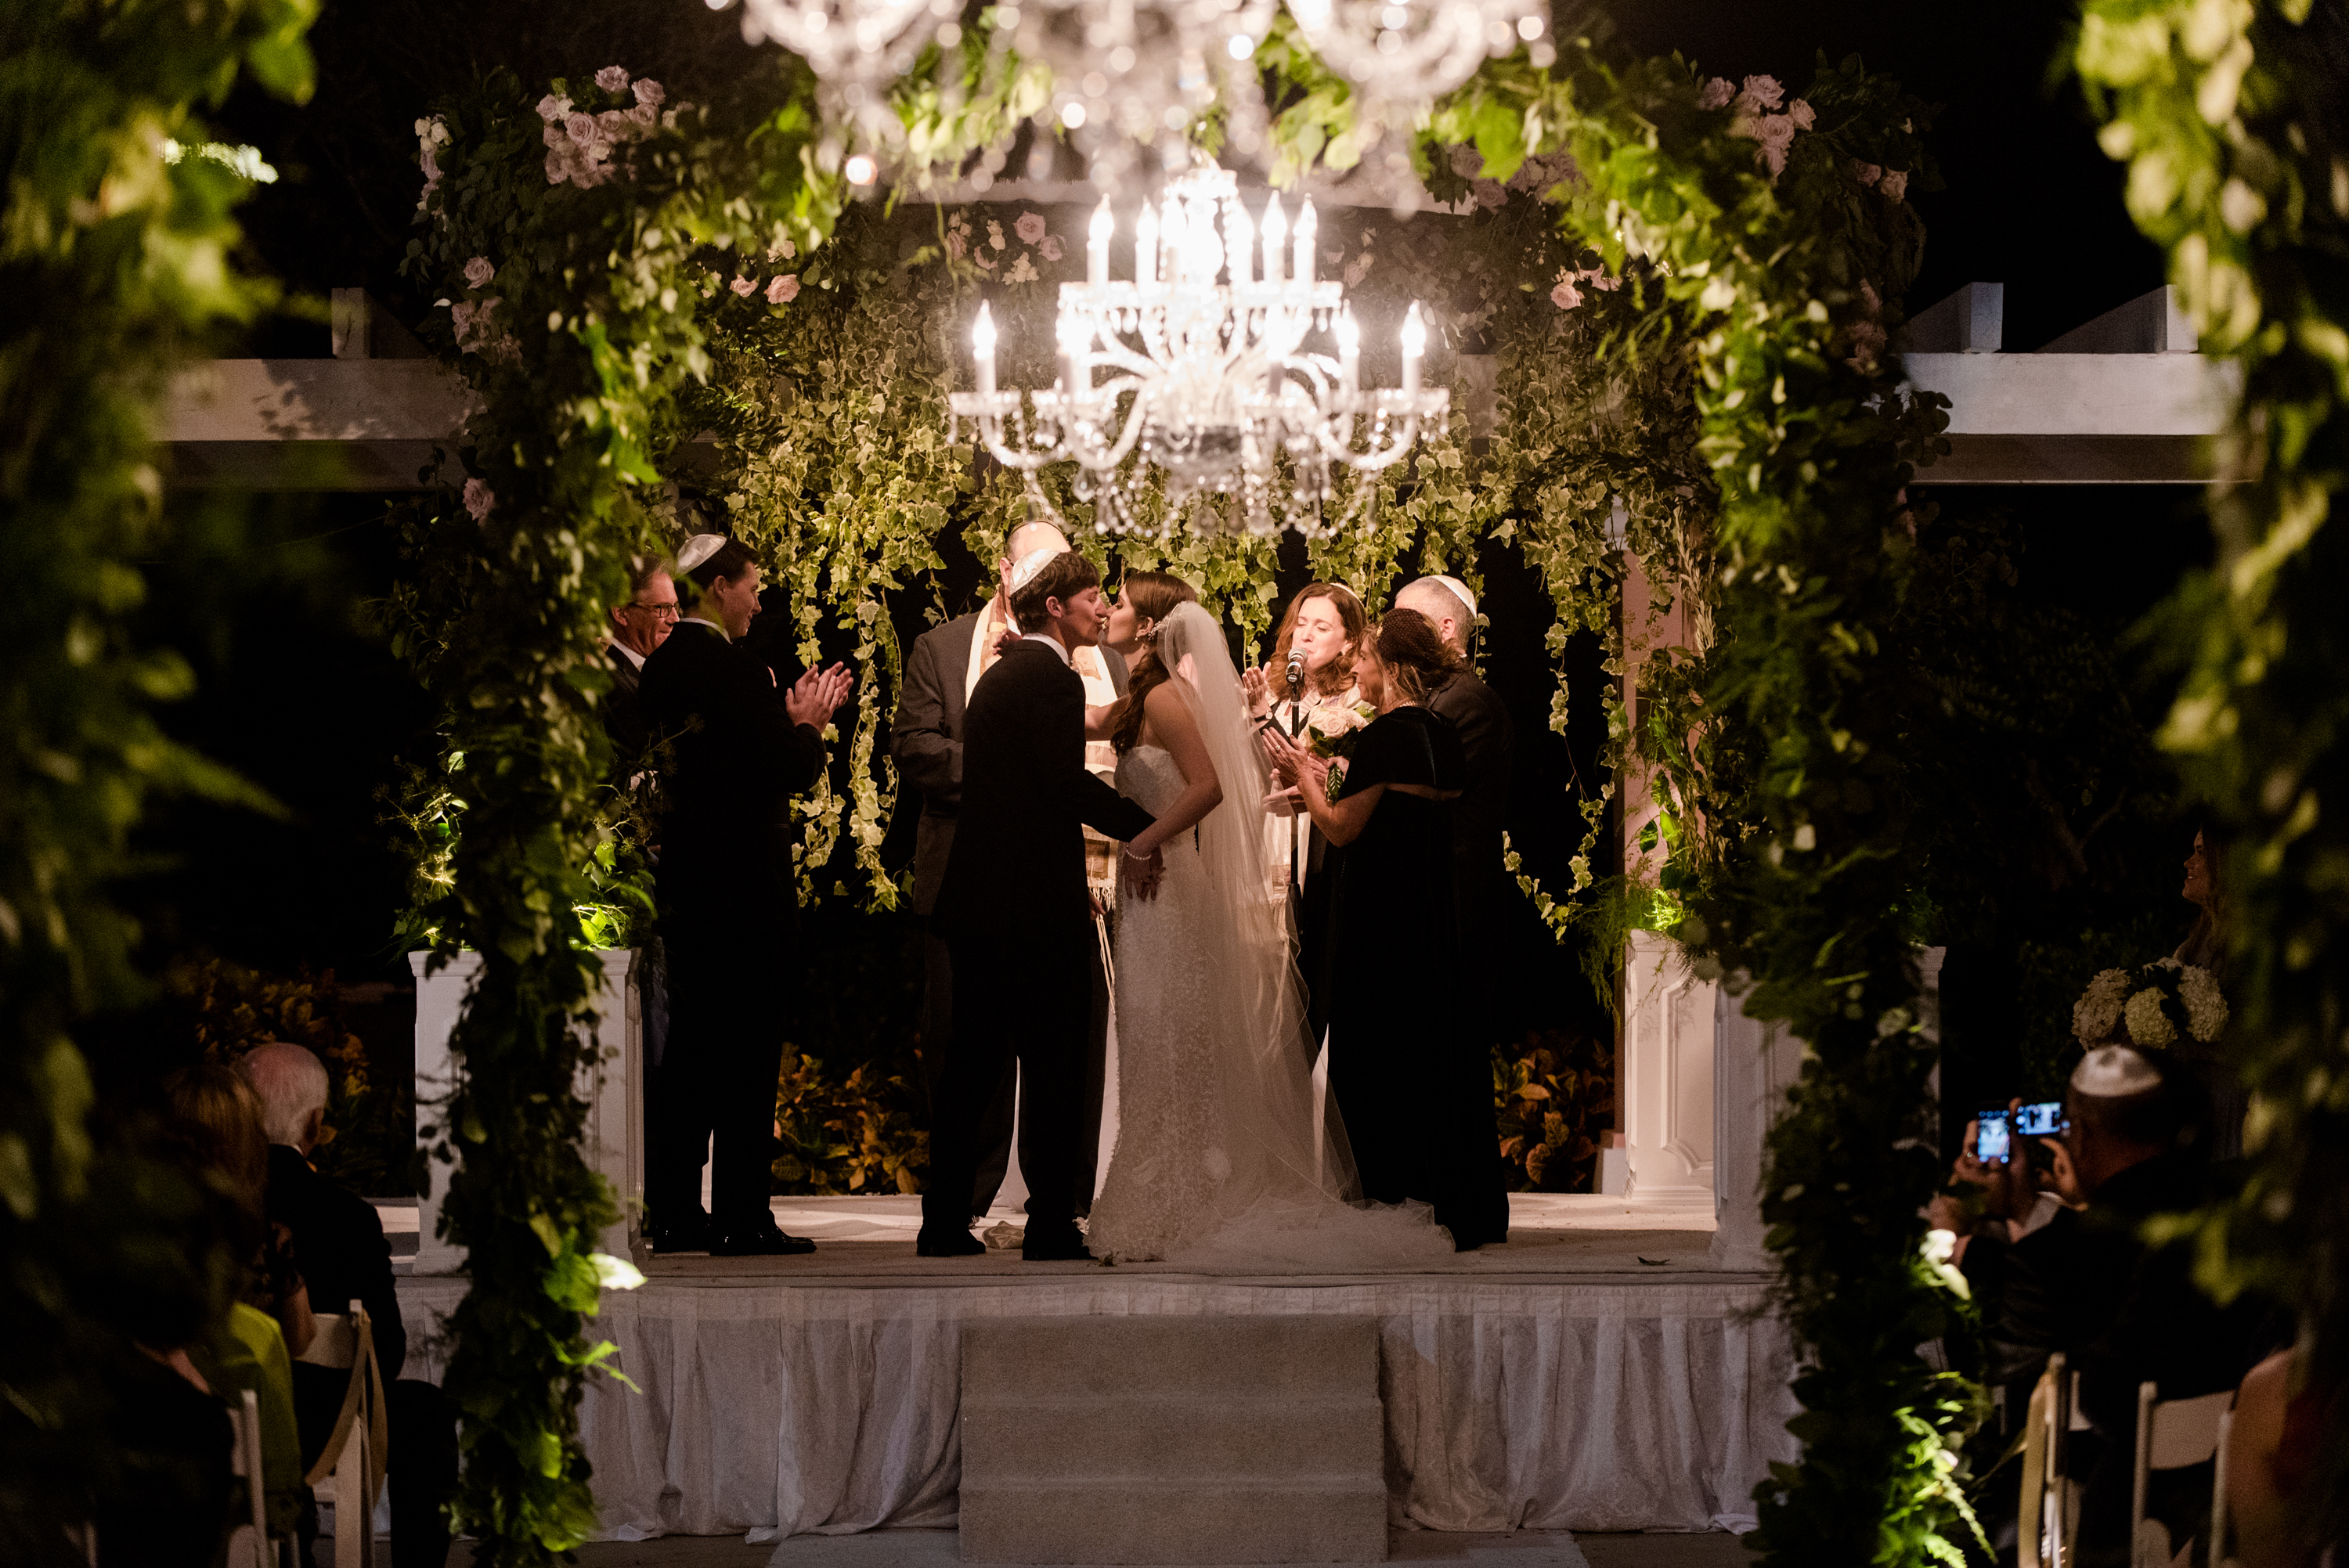 Winter Jewish Wedding at Vinoy Renaissance Resort - Tracie Domino Events